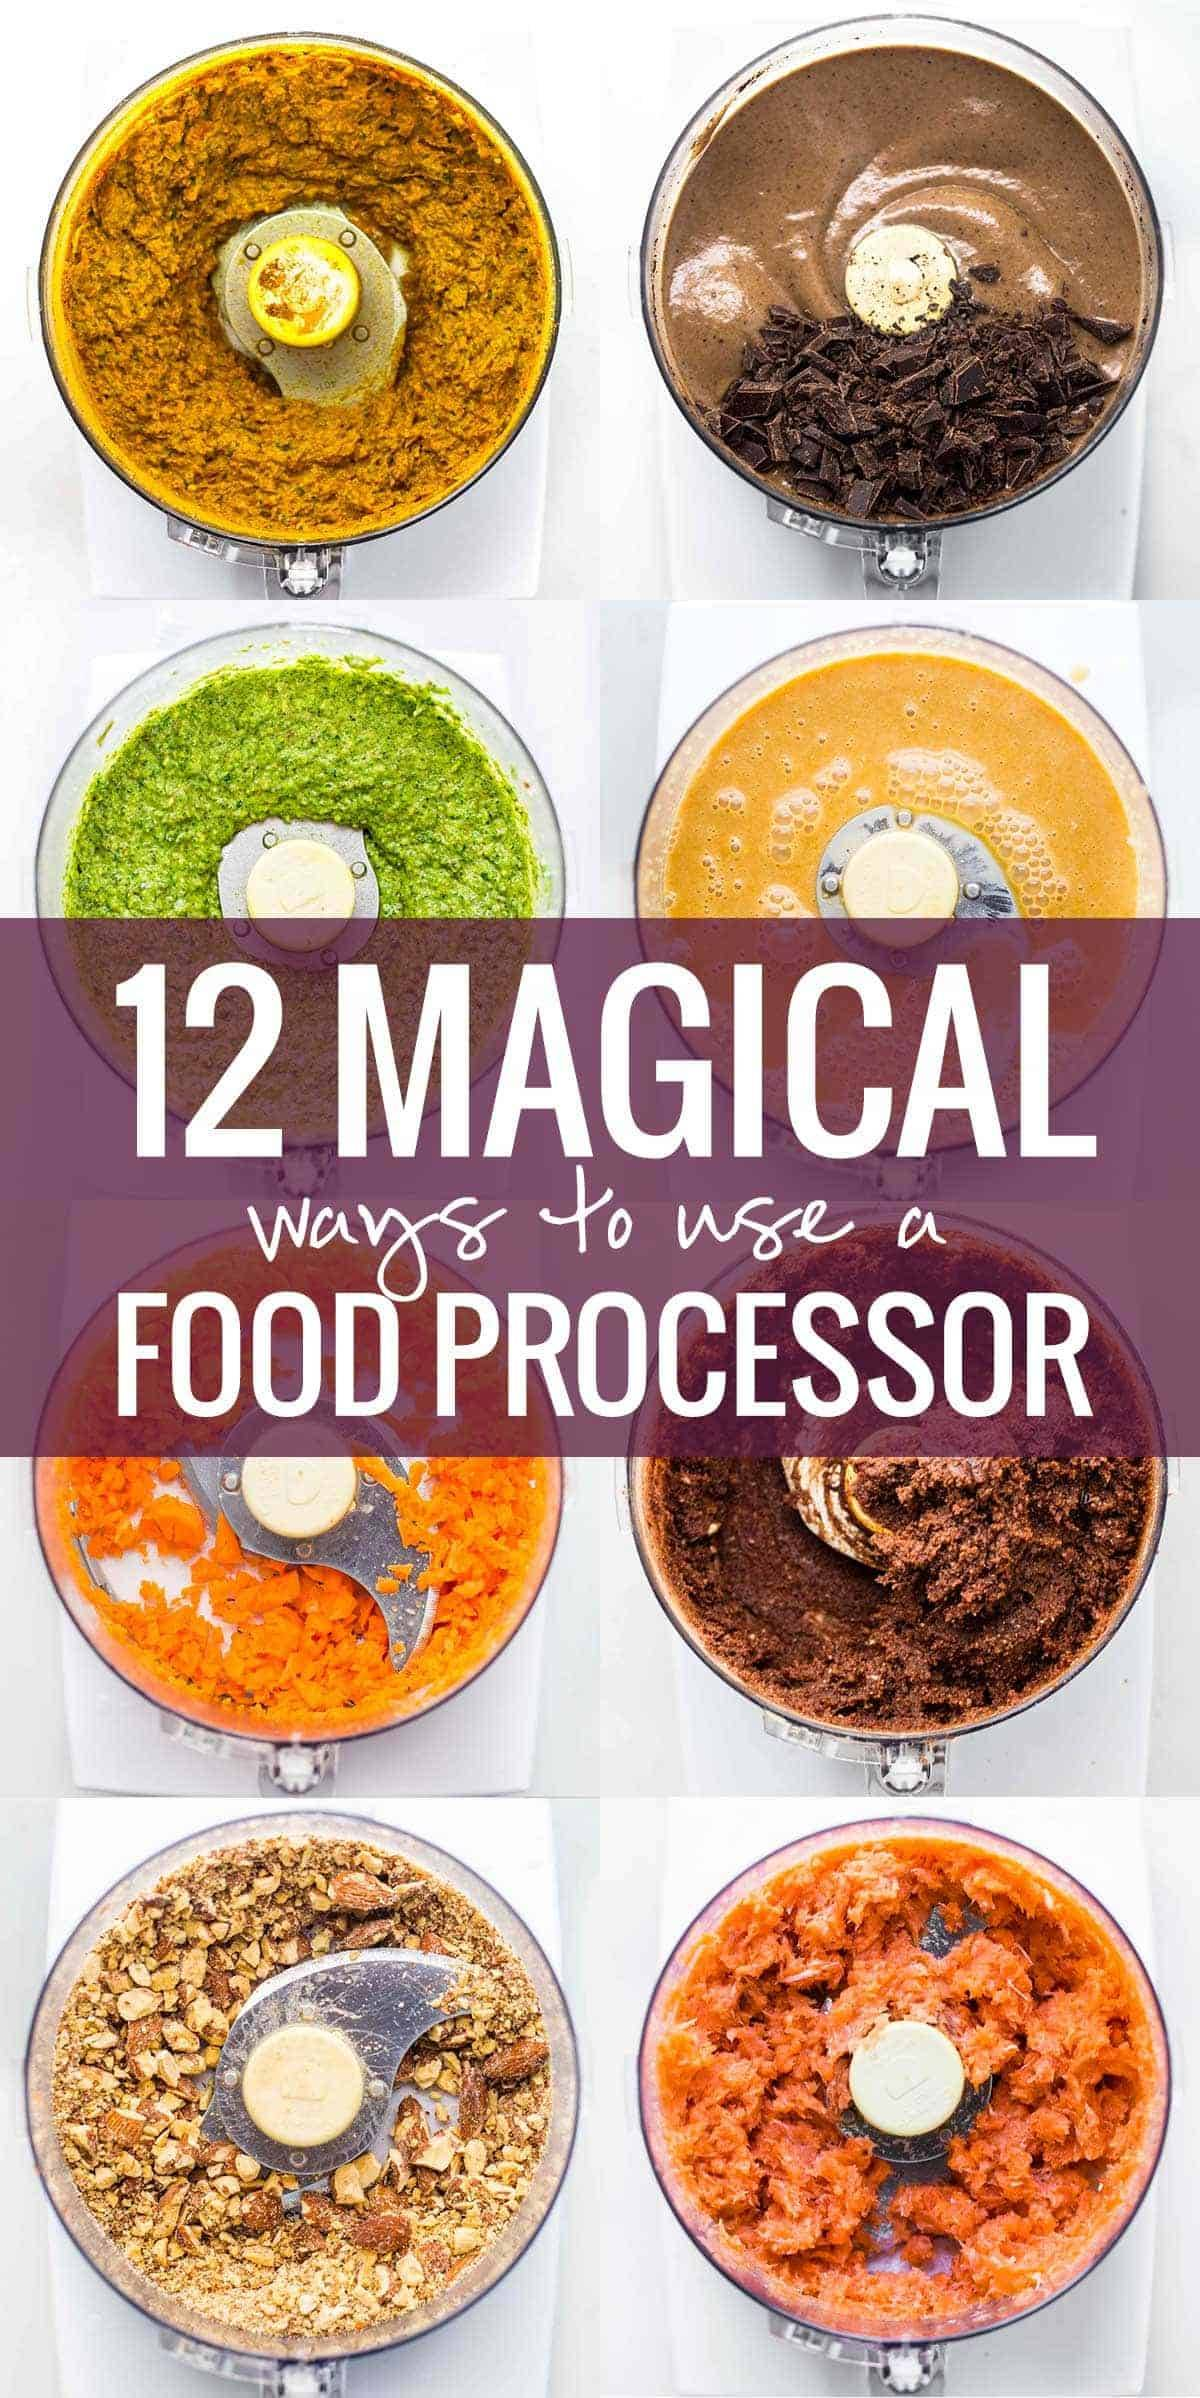 12 magical ways to use a food processor pinch of yum 12 magical ways to use a food processor forumfinder